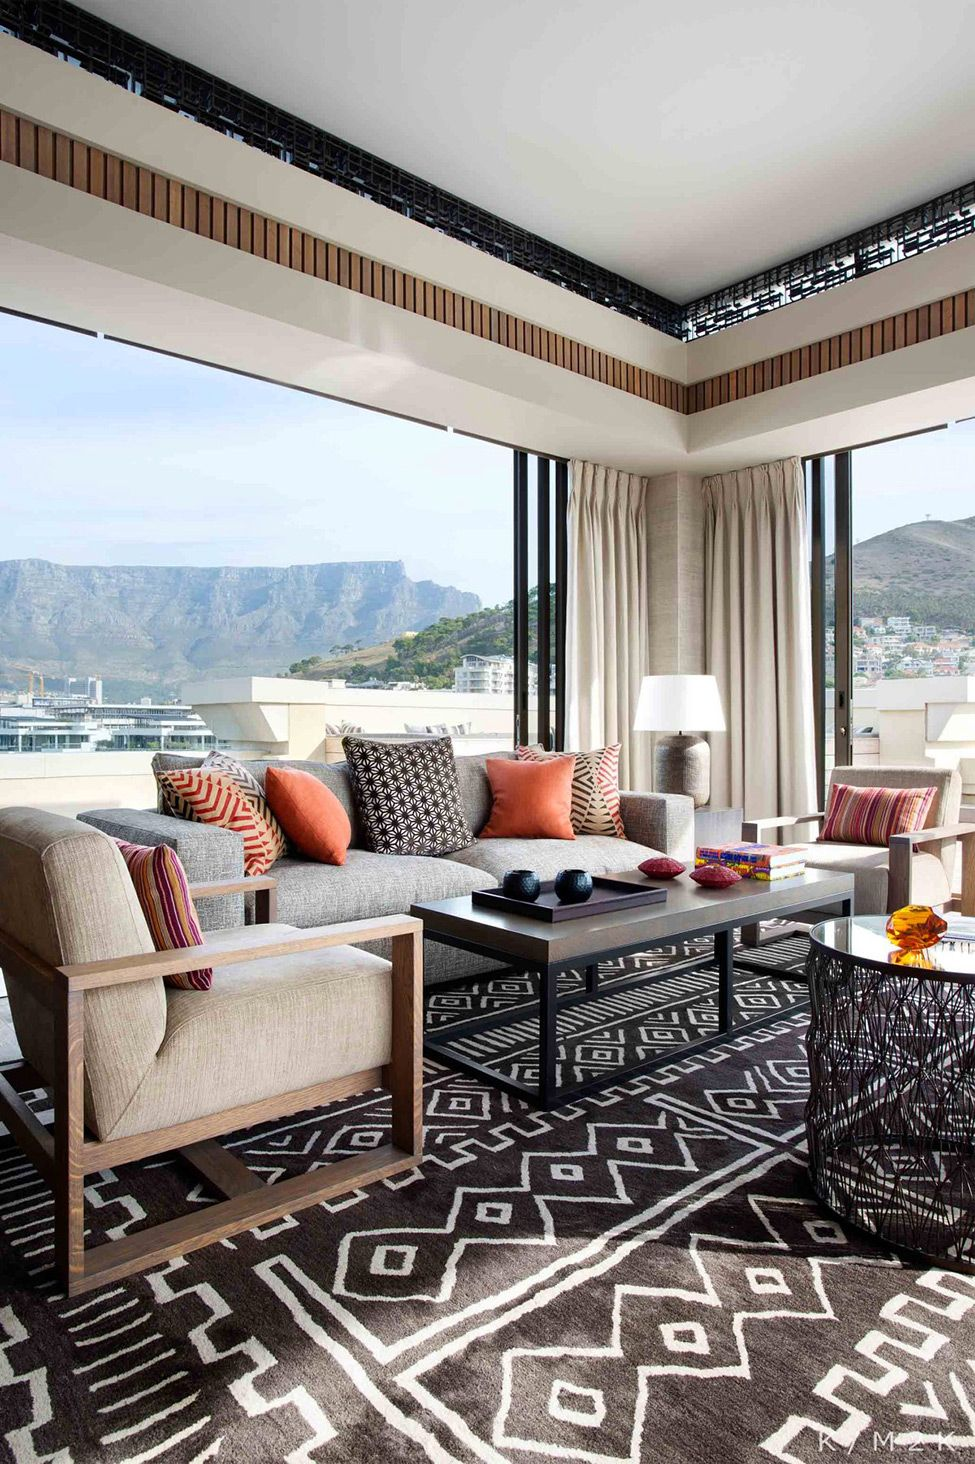 Refined materials and subtle opulence in cape town penthouse mud cloth inspired rug